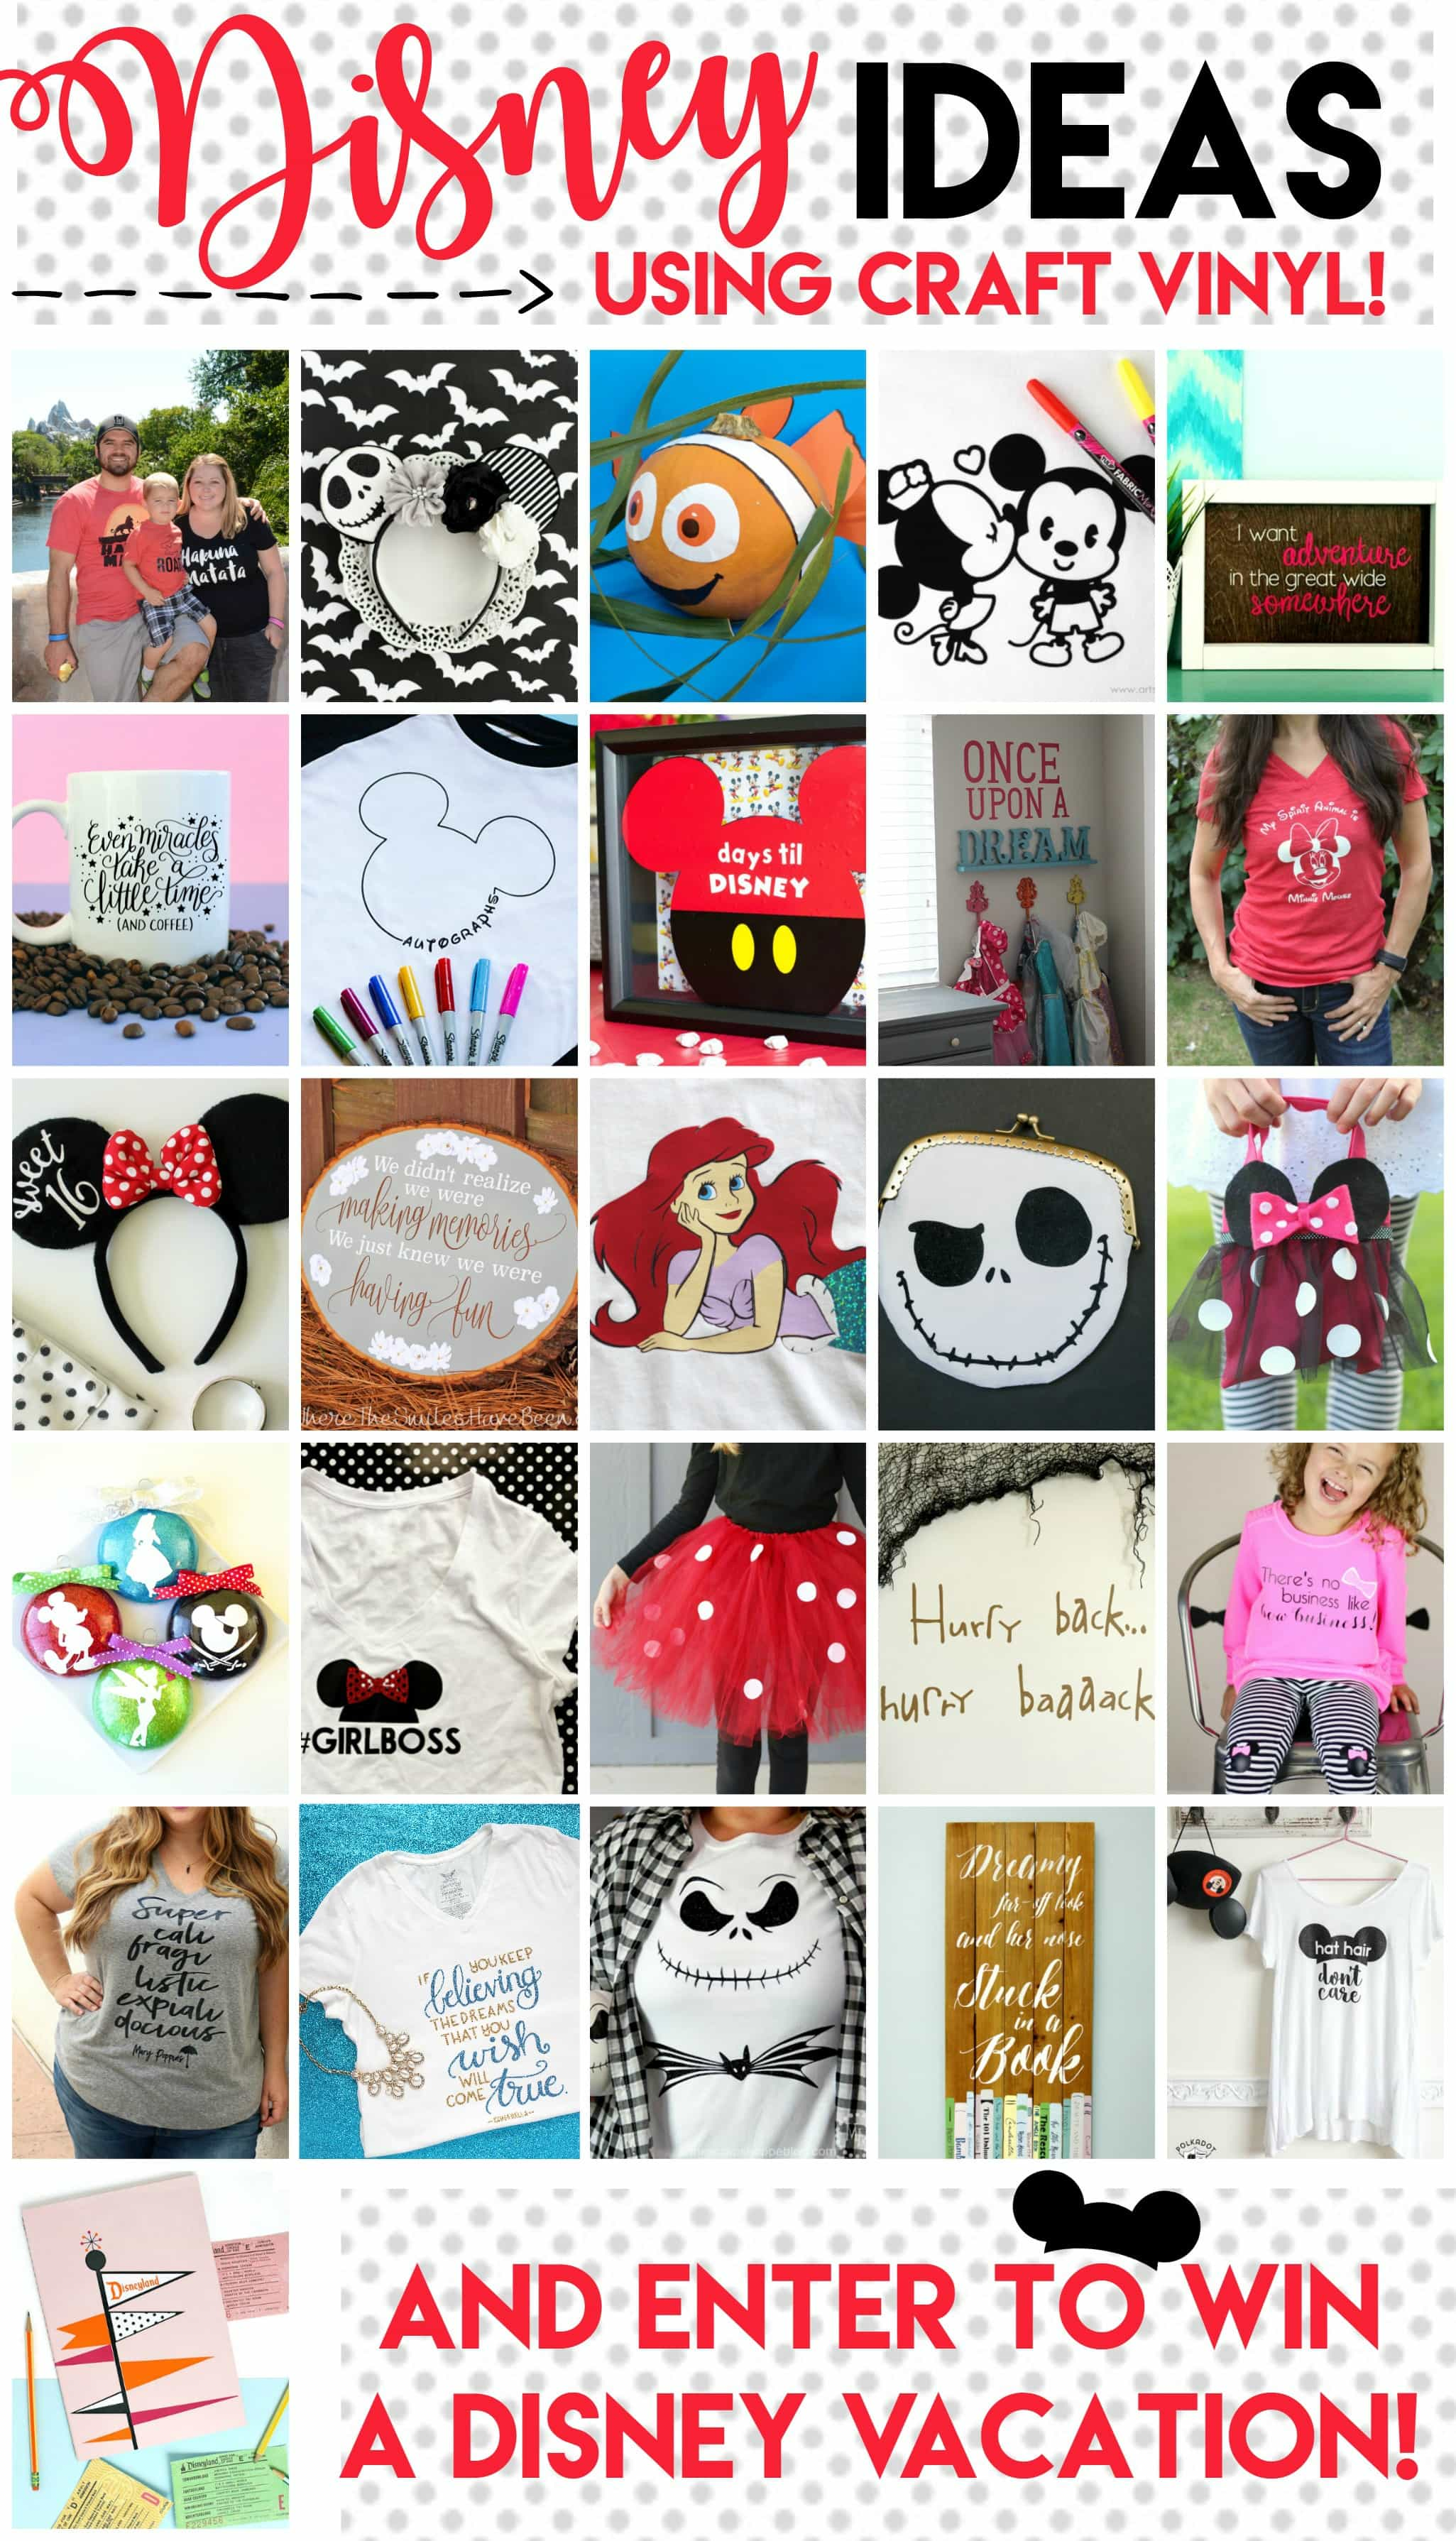 """Make your own DIY Disney T-shirt with this free cut file and iron on vinyl. Cute """"hat hair don't care"""" Mickey Ears Disney tshirt!"""